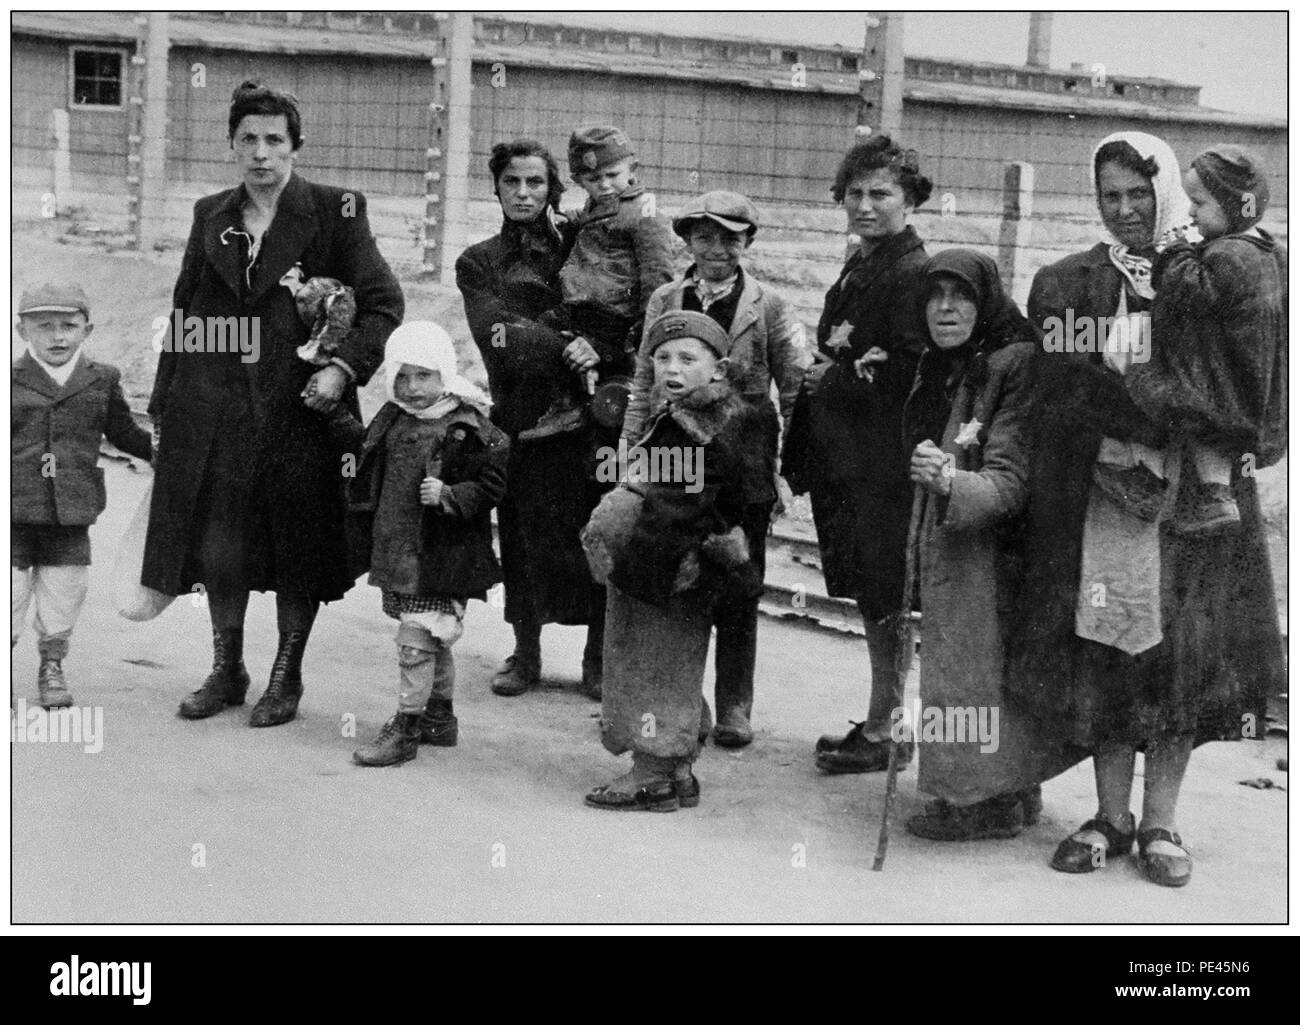 "Jewish children with their mothers and grandmothers arrive in Auschwitz-Birkenau. A WW2 German Nazi Concentration & Extermination camp. Jewish children made up the largest group of those deported to the camp. They were usually sent there along with adults, beginning in early 1942, as part of the ""final solution of the Jewish question""—the total destruction of the Jewish population of Europe...Auschwitz concentration camp was a network of German Nazi concentration camps and extermination camps built and operated by the Third Reich in Polish areas annexed by Nazi Germany during World War II. - Stock Image"